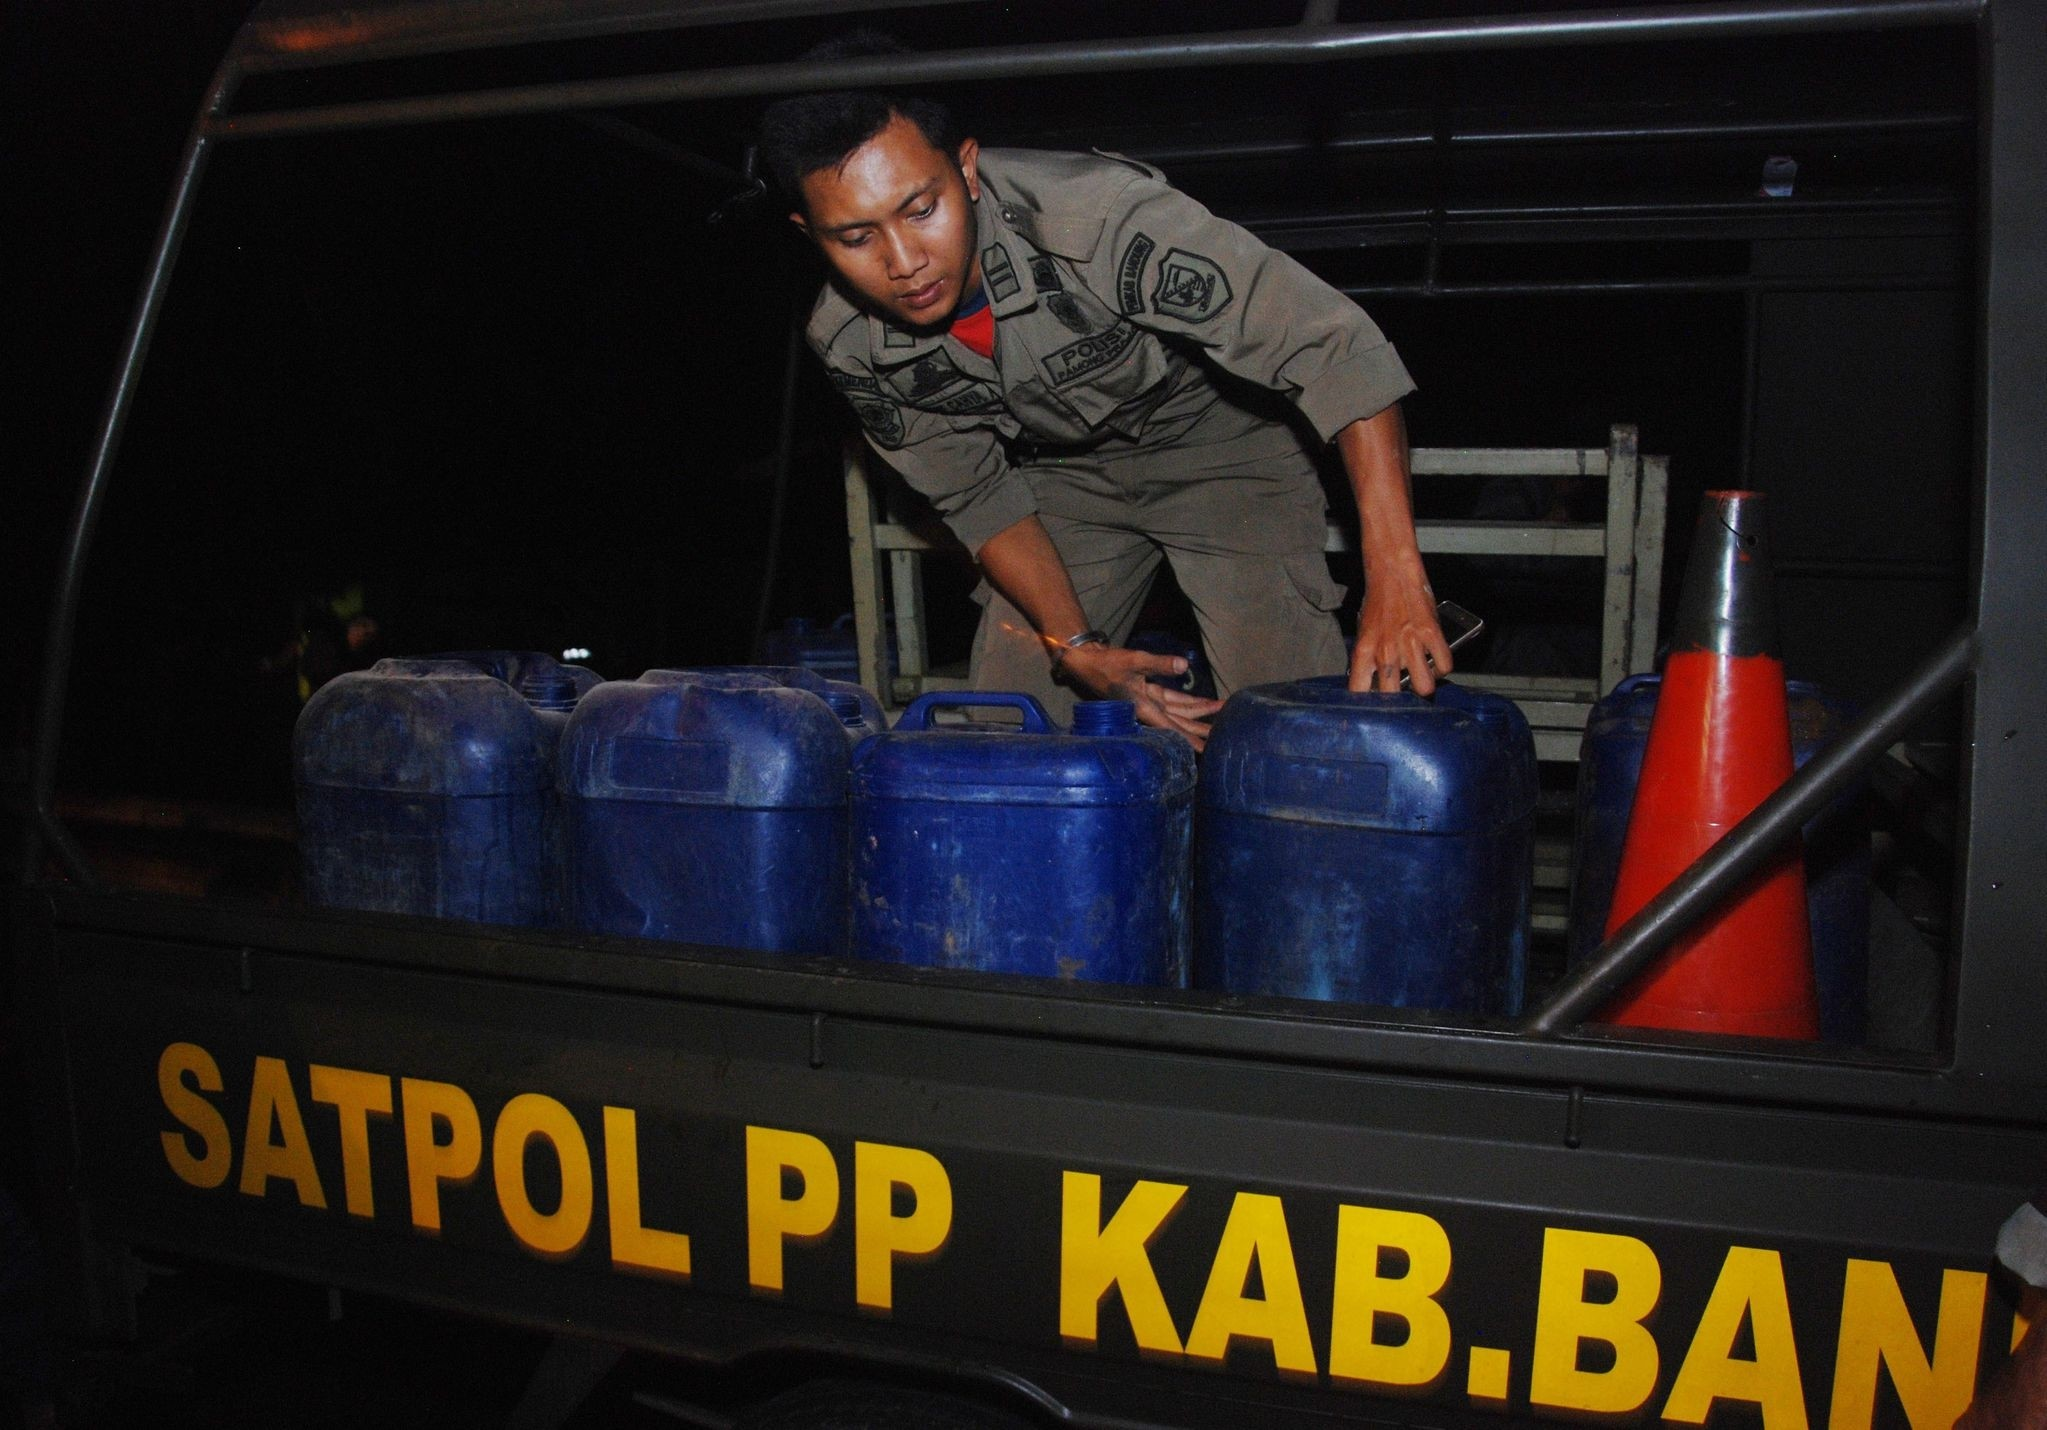 Indonesian police prepare to transport the containers filled with illegal alcohol from a house in Cicalengka district in West Java province on April 8, 2018. (AFP Photo)